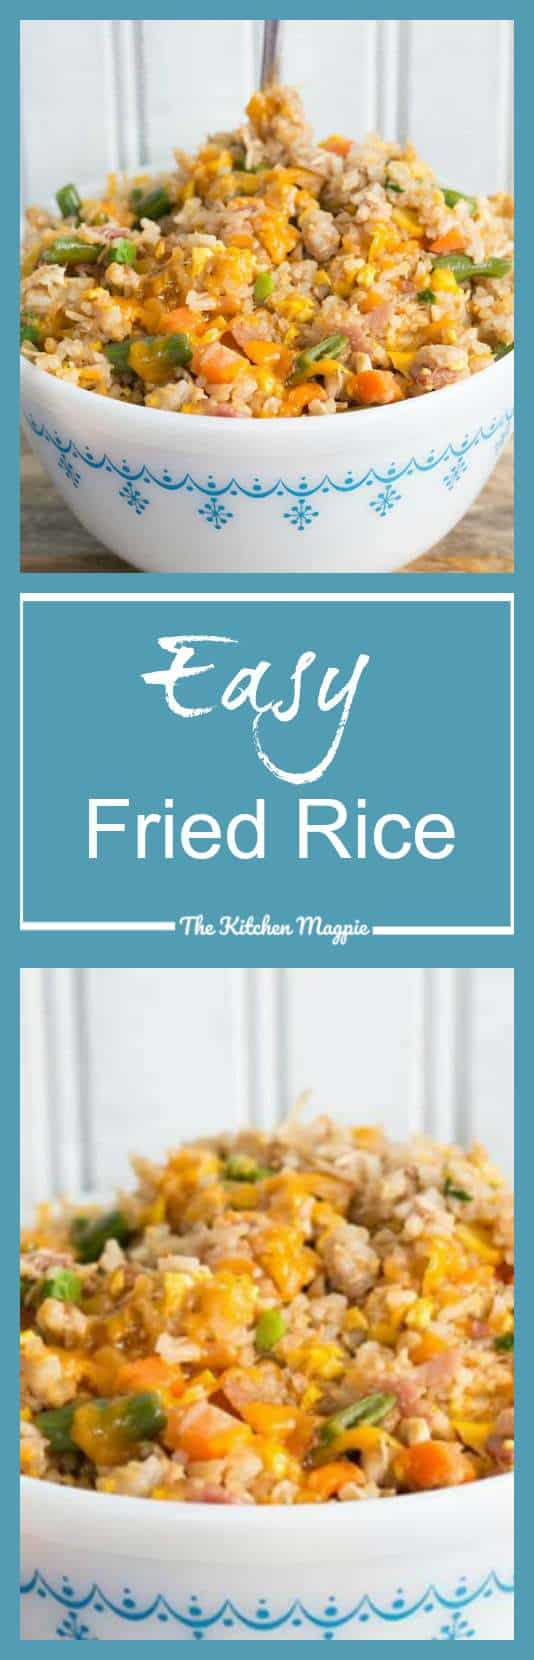 How to Make Easy Fried Rice : Recipe & Video! - The Kitchen Magpie